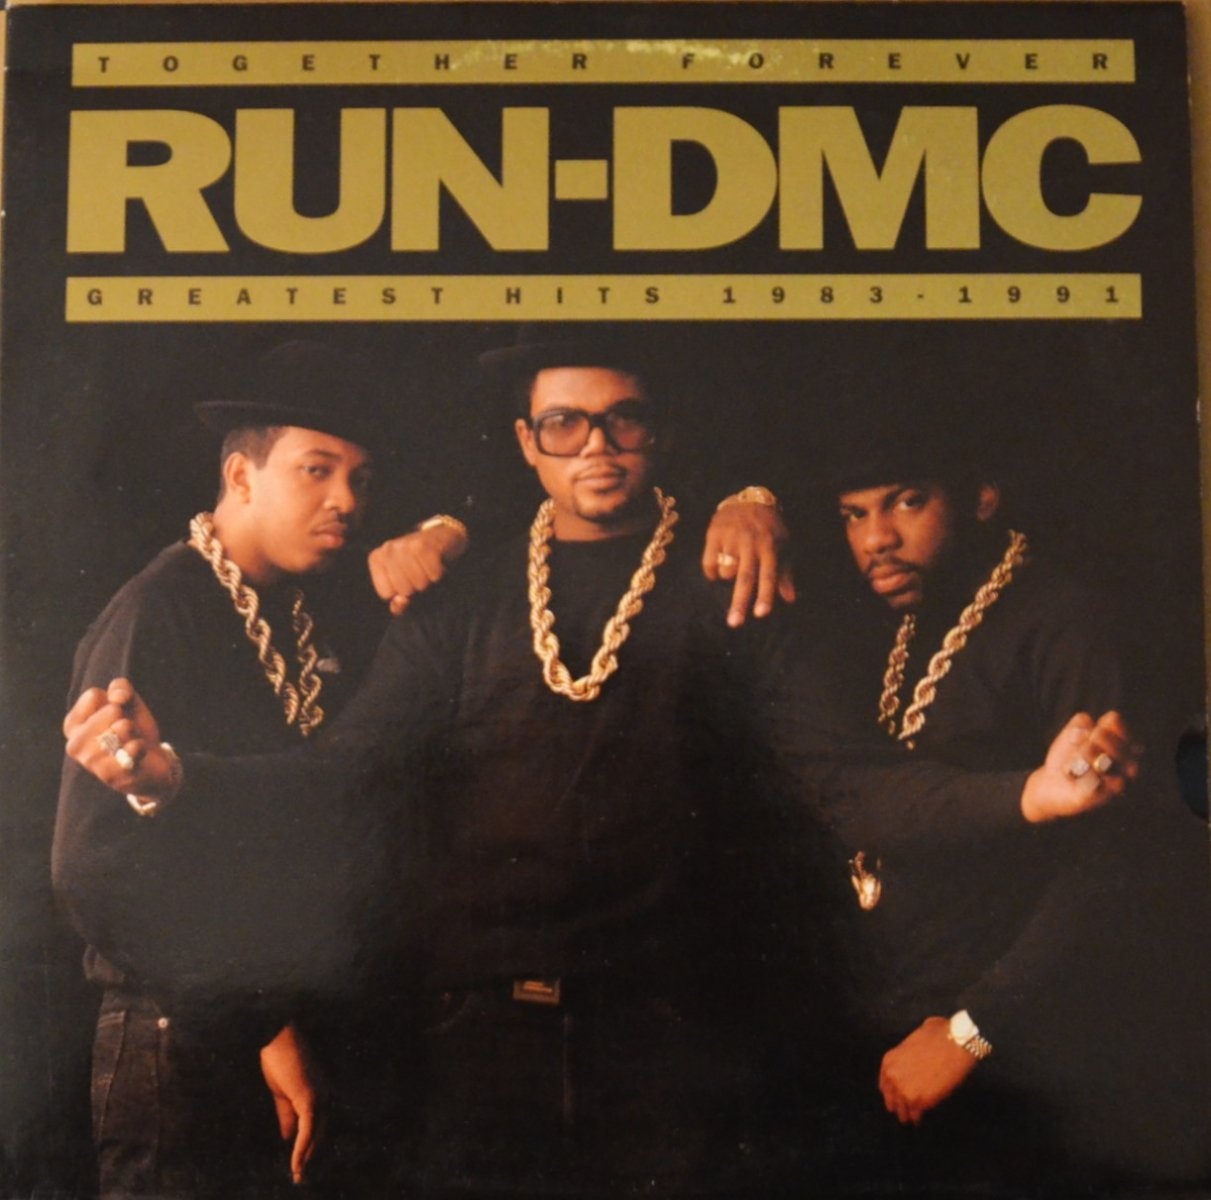 RUN-DMC ‎/ TOGETHER FOREVER - GREATEST HITS 1983-1991 (2LP)